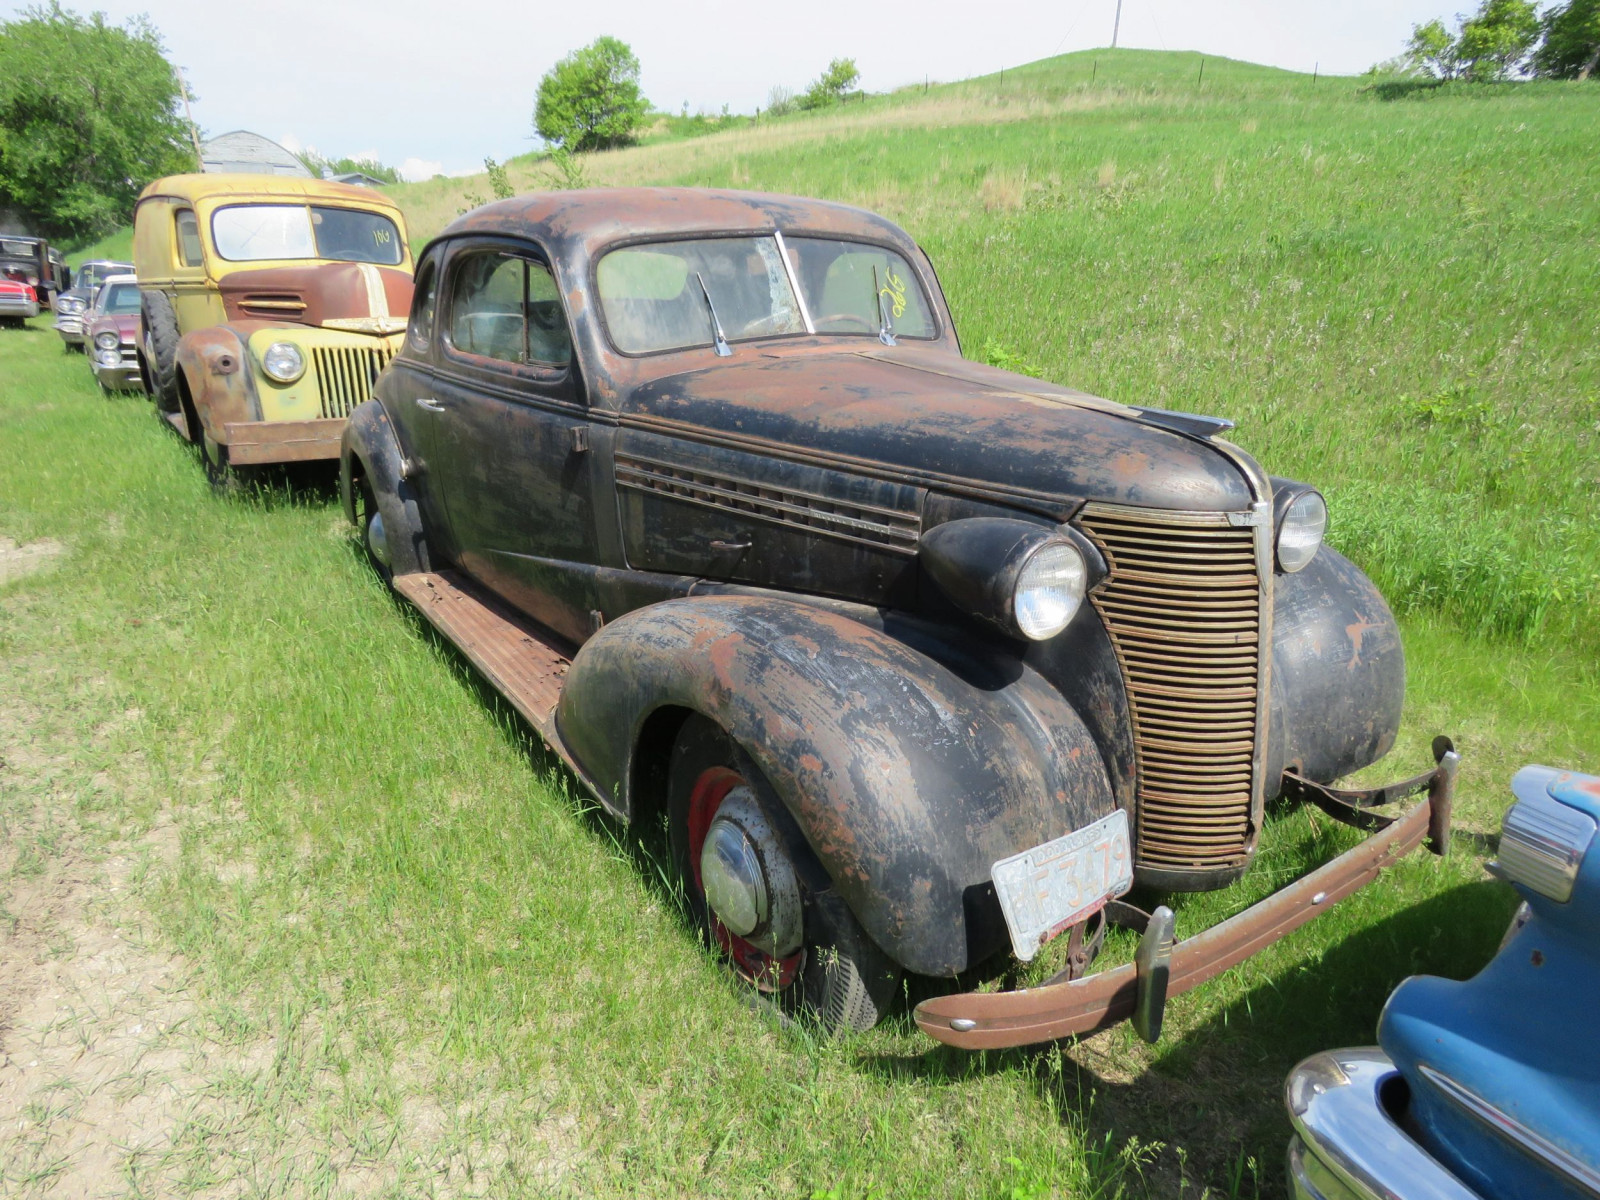 1938 Chevrolet Master Deluxe Coupe 21HA12 15228 - Image 3